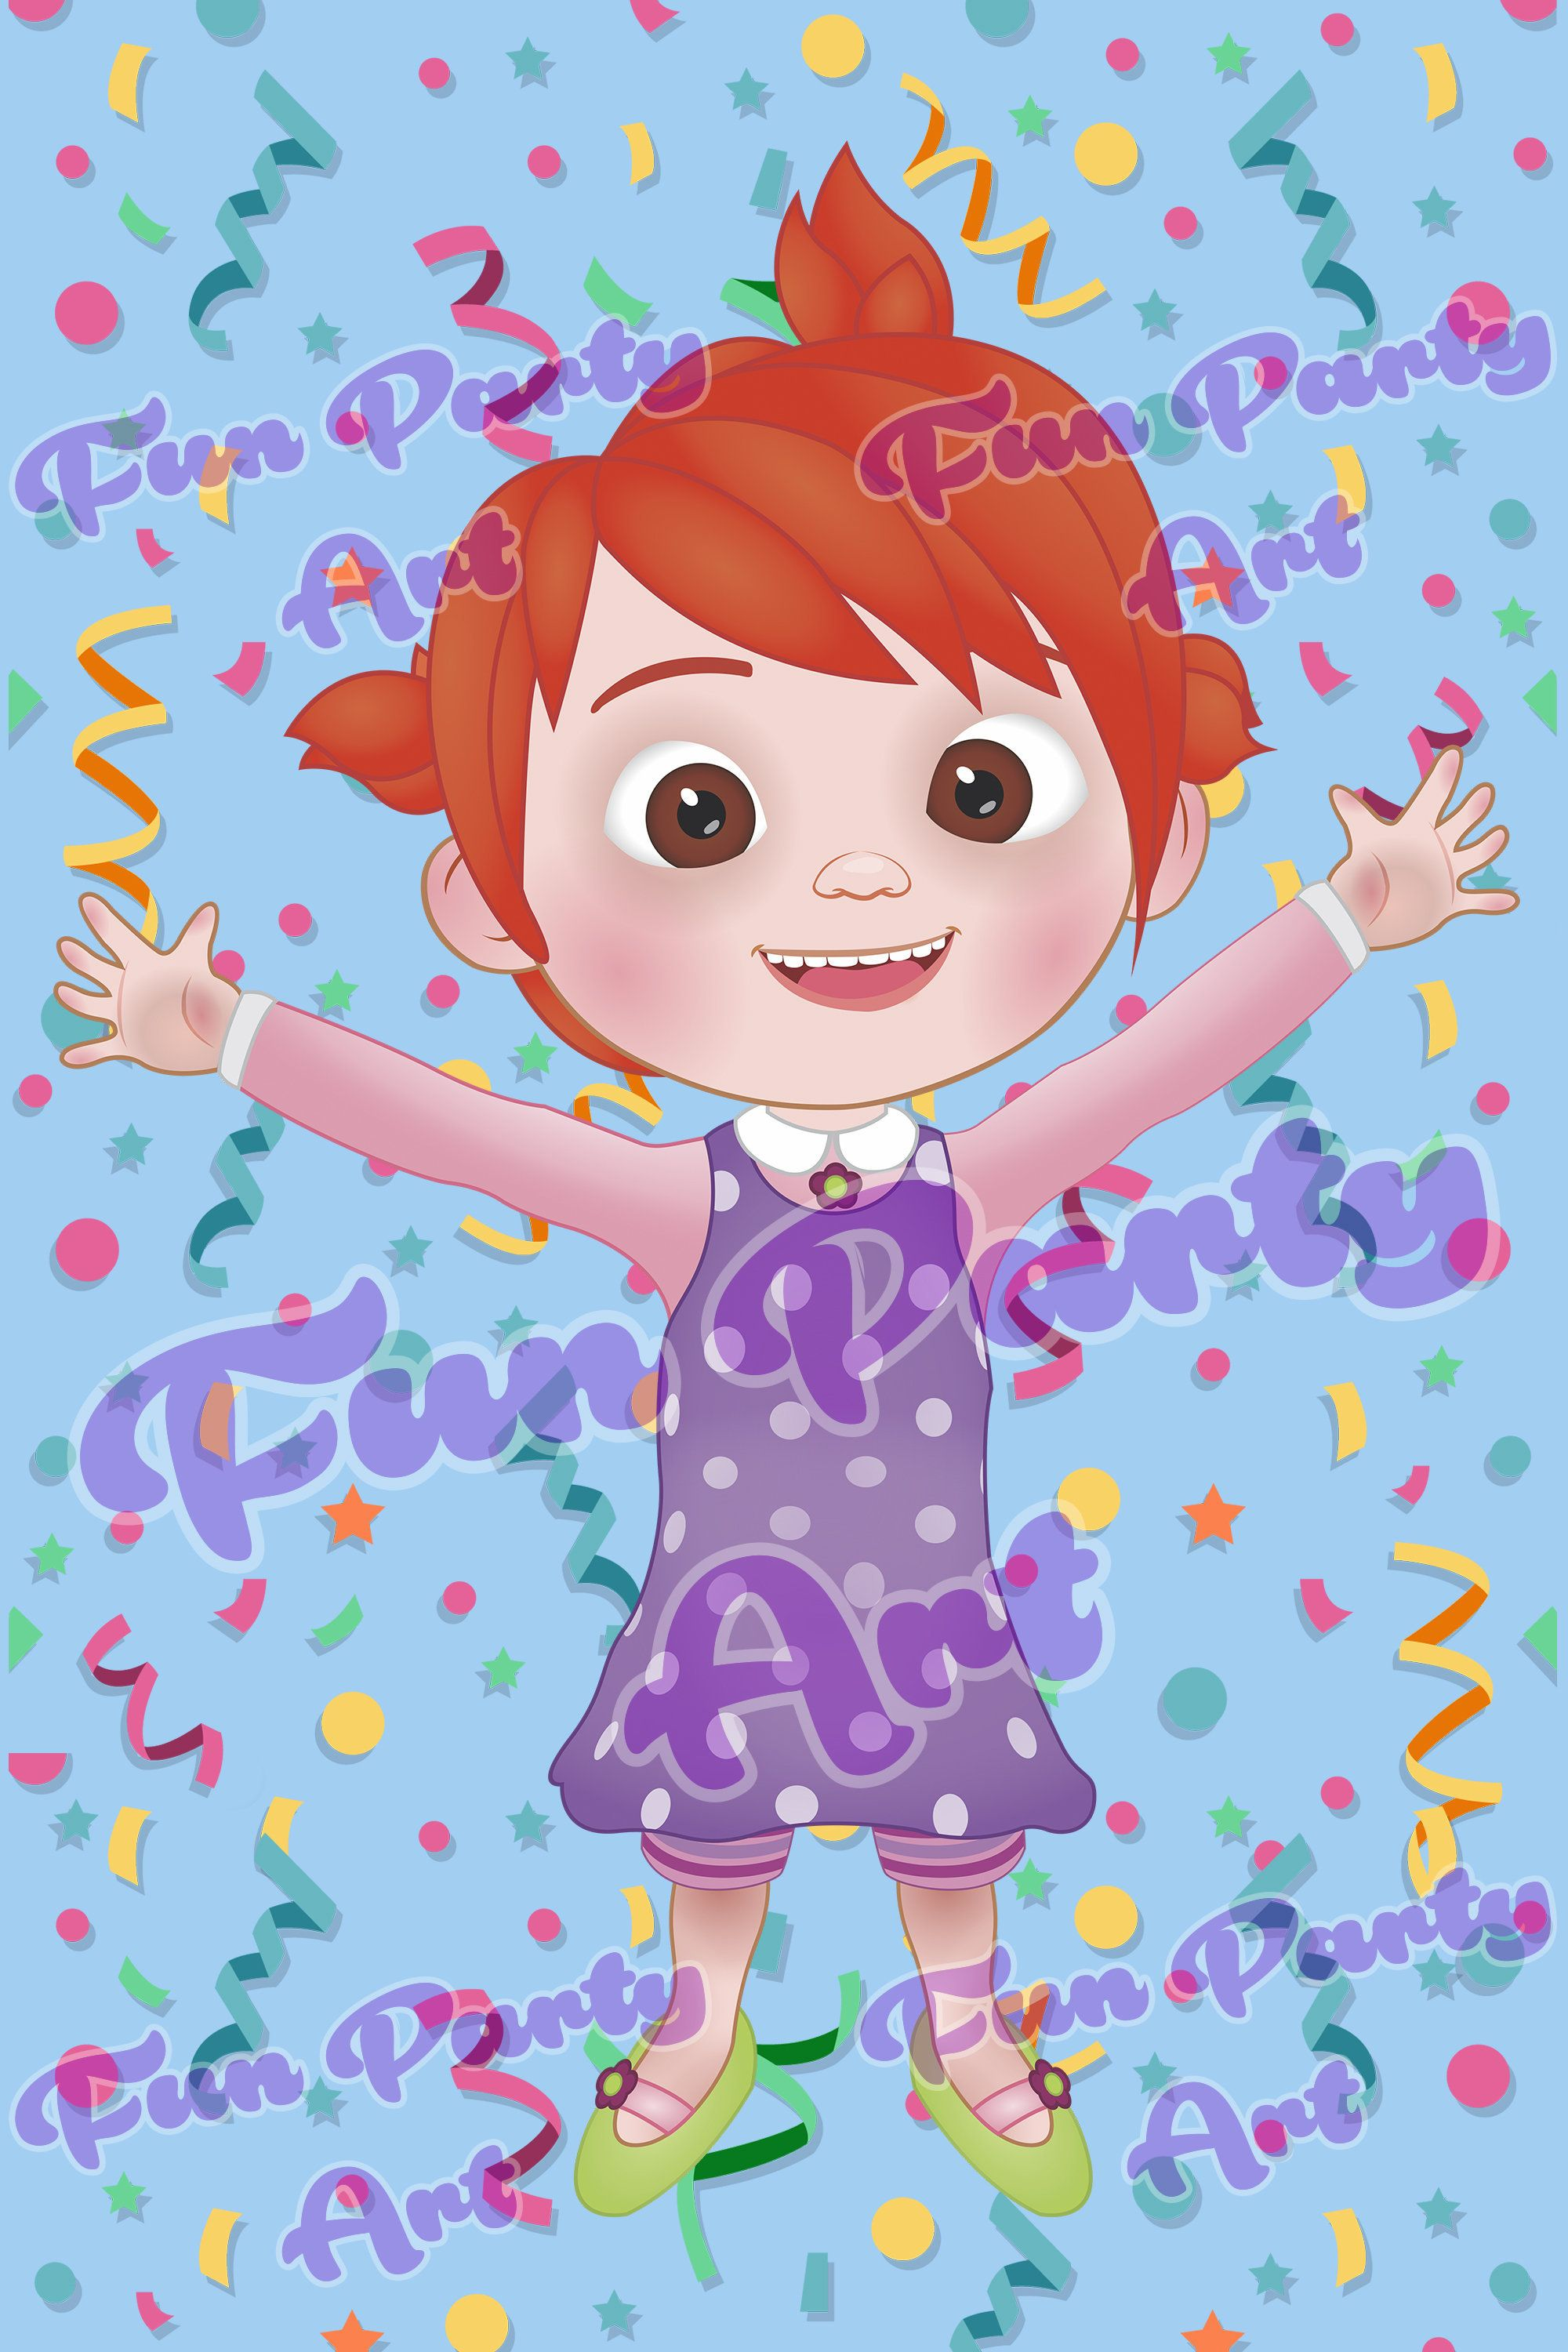 Cocomelon Yoyo Girl Baby Shark Png Digital Instant Download Birthday Party In 2020 Baby Boy 1st Birthday Party 2nd Birthday Party Themes Baby Birthday Party